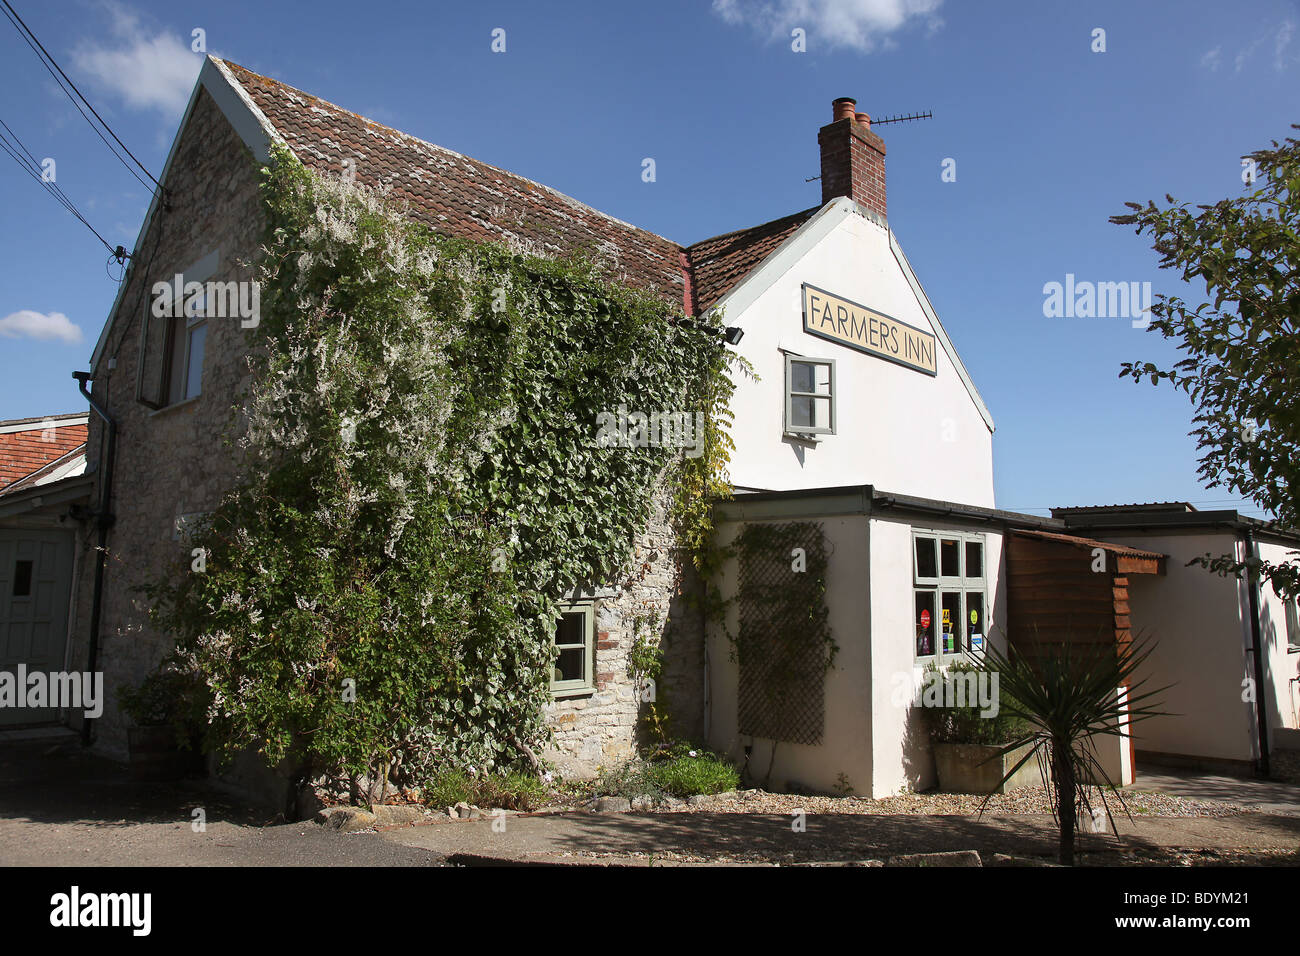 Picture by Mark Passmore. 06/09/2009. General view of the Farmers Inn, a gastro- pub in West Hatch, Somerset. - Stock Image